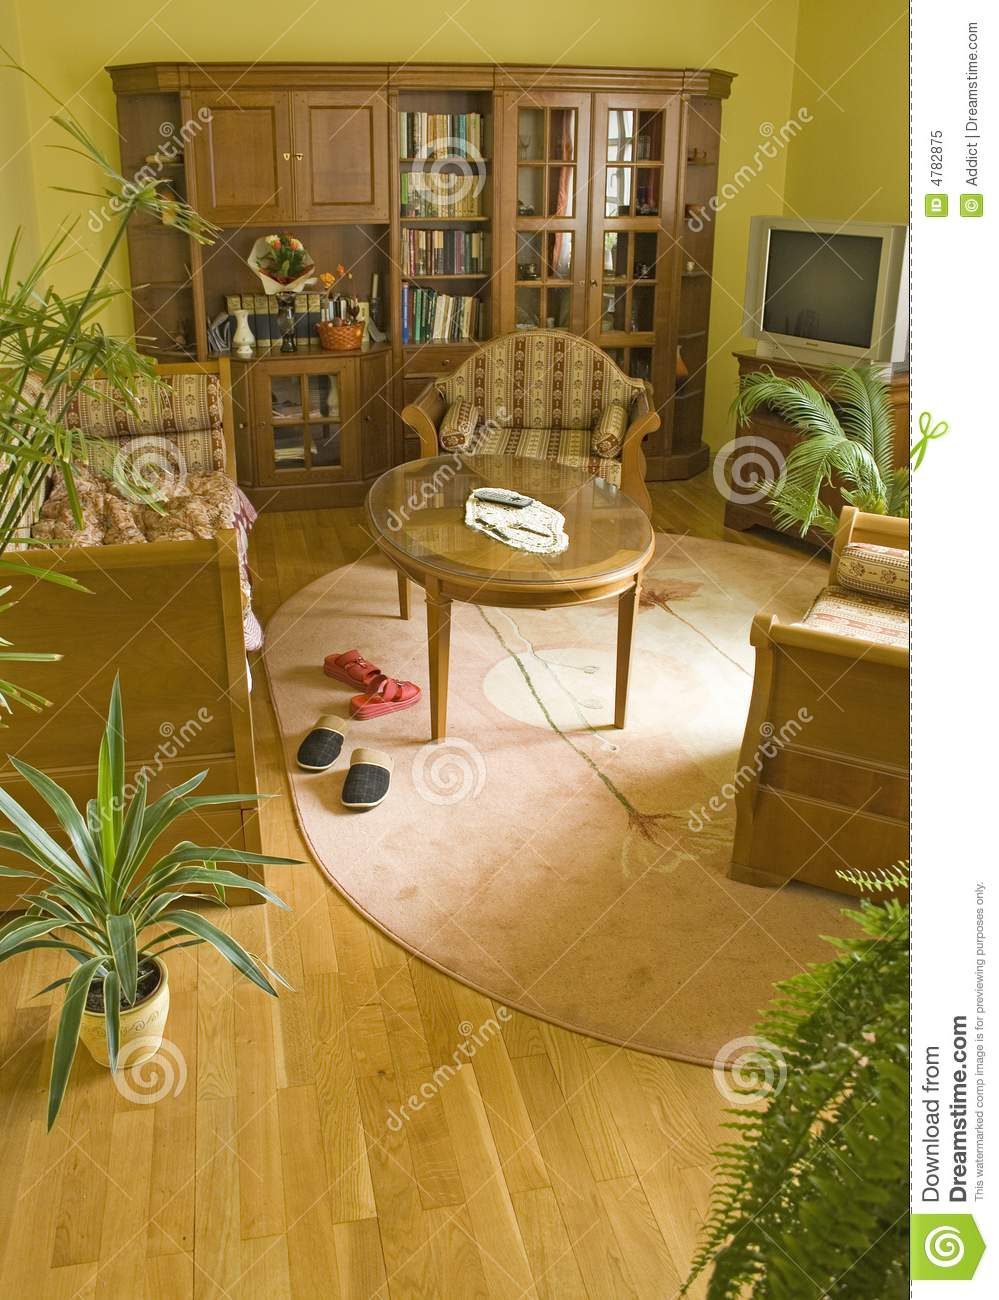 Royalty Free Stock Photo Download Living Room With Green Plants